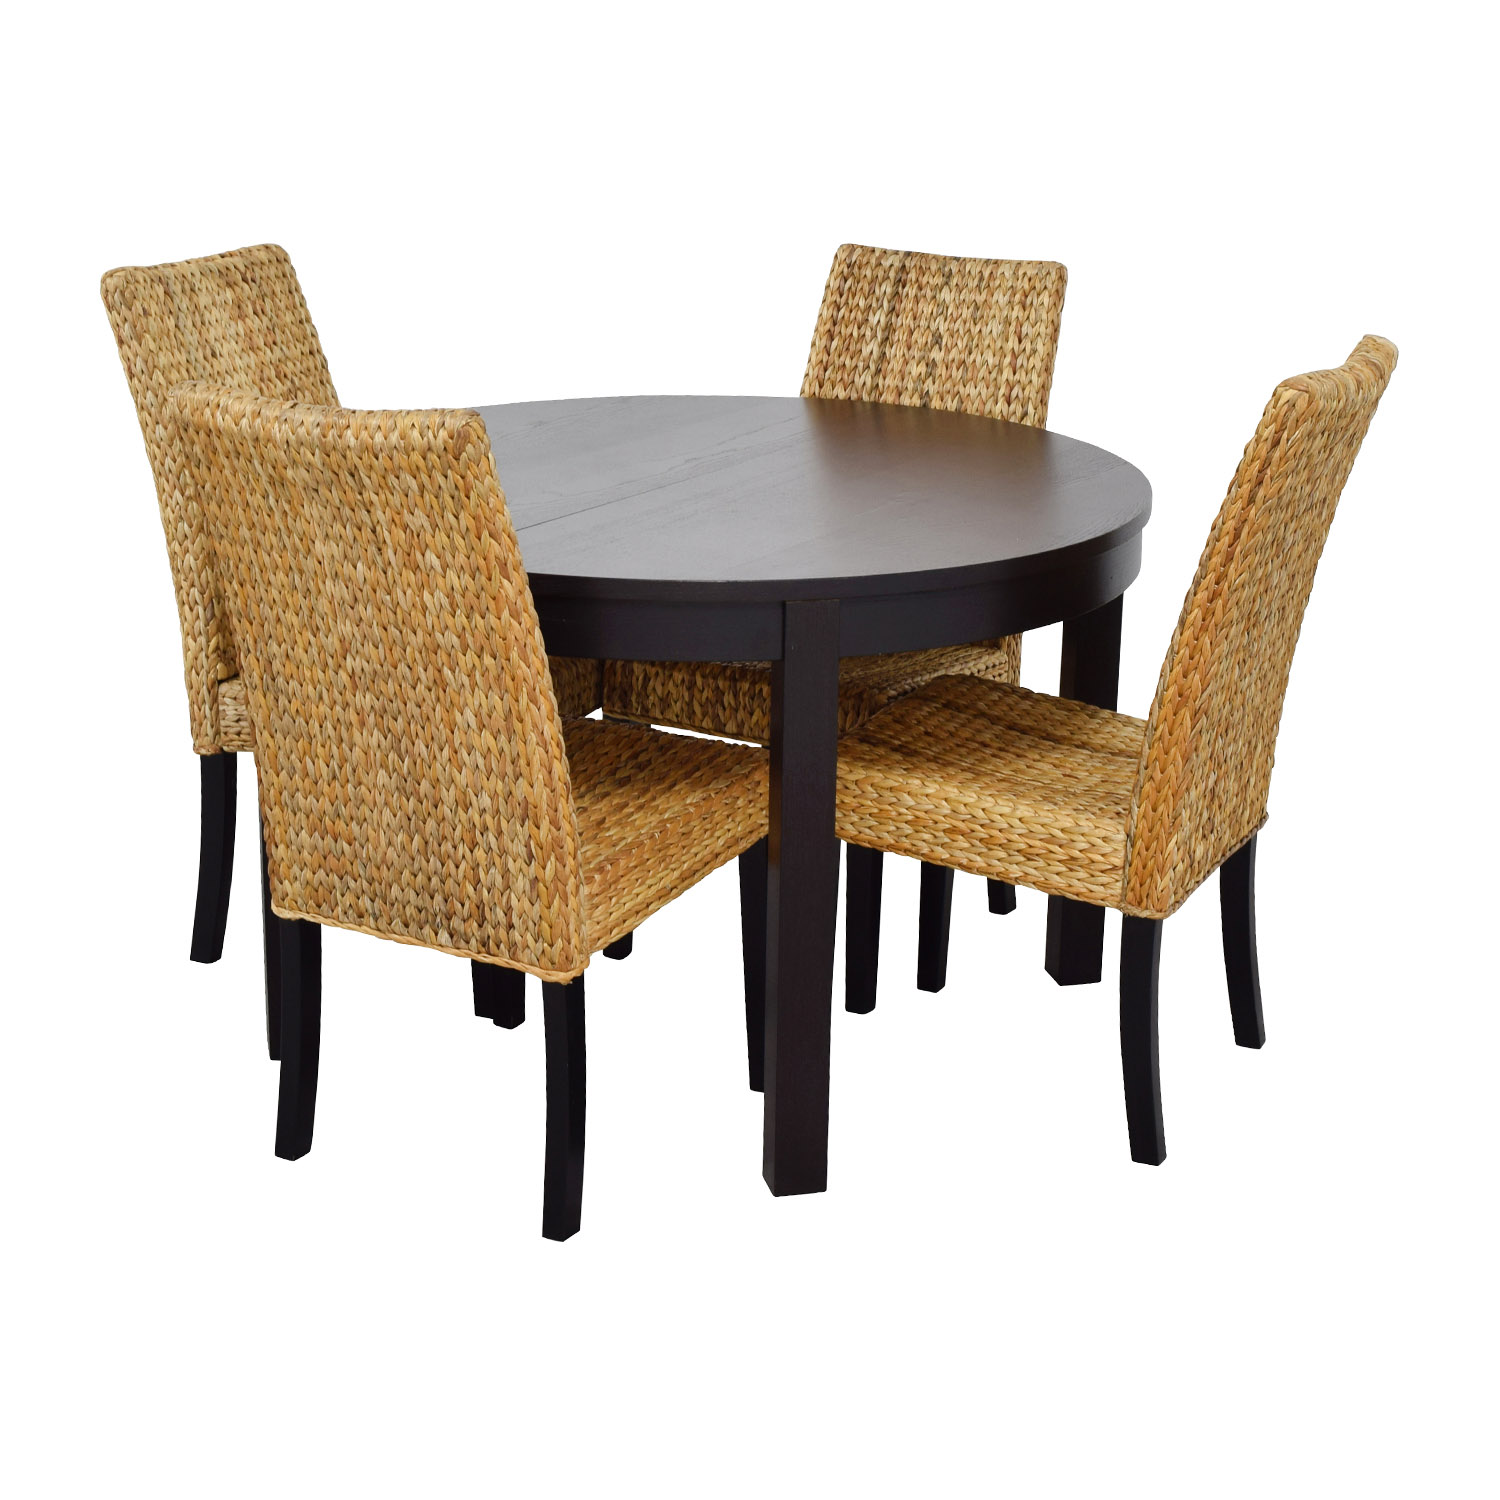 shop Macys & IKEA Round Black Dining Table Set with Four Chairs online